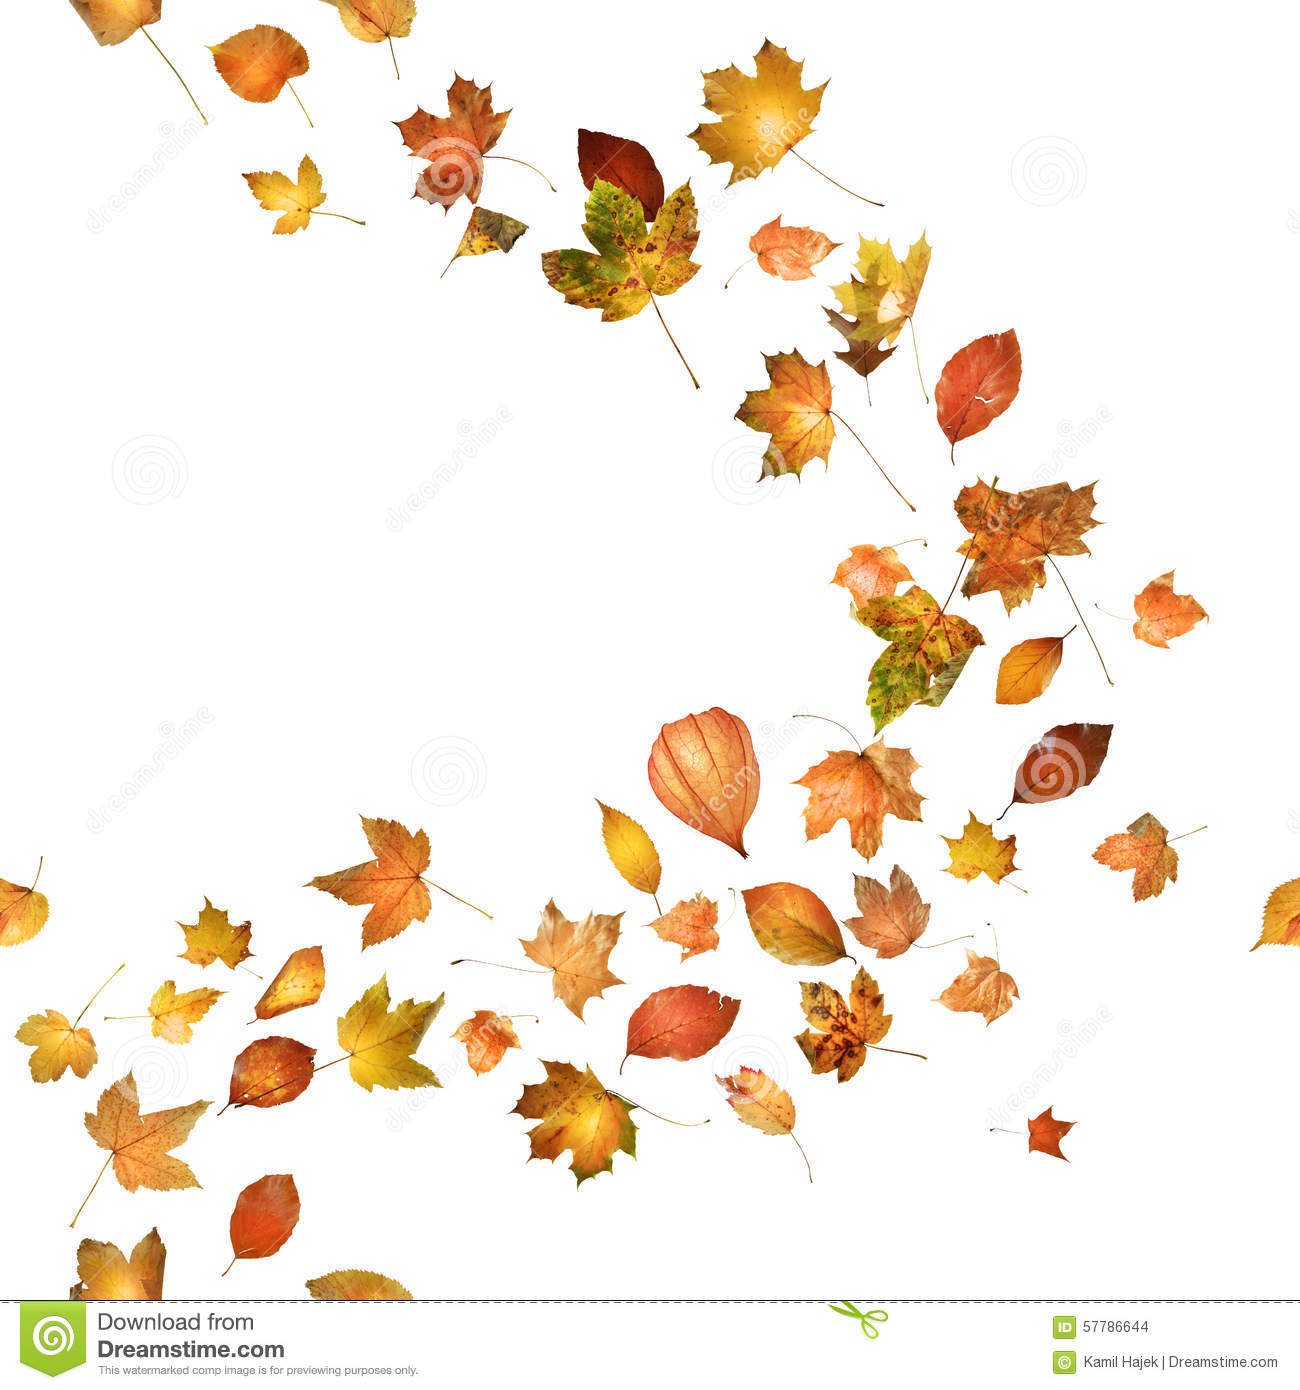 Falling Leaves Wallpaper Free Download Autumn Leaf Breeze Stock Photo Image 57786644